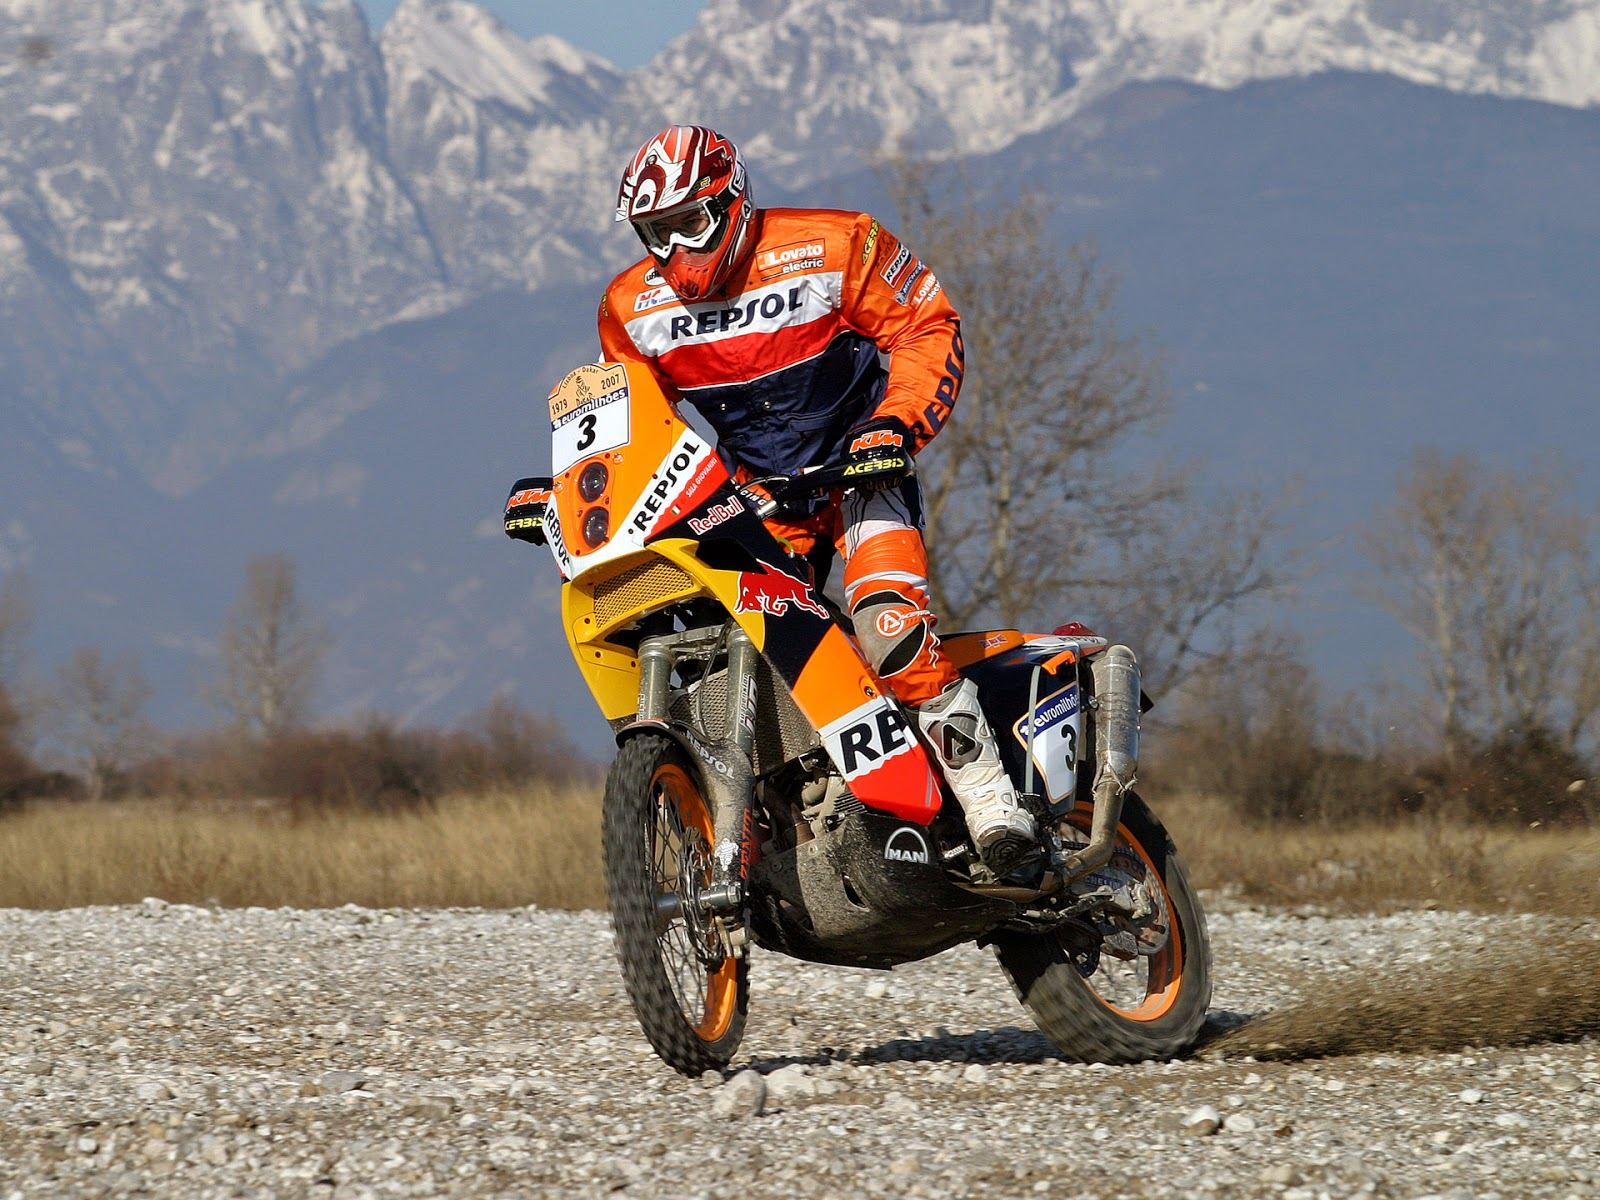 KTM 690 Rally Bike Photo Gallery